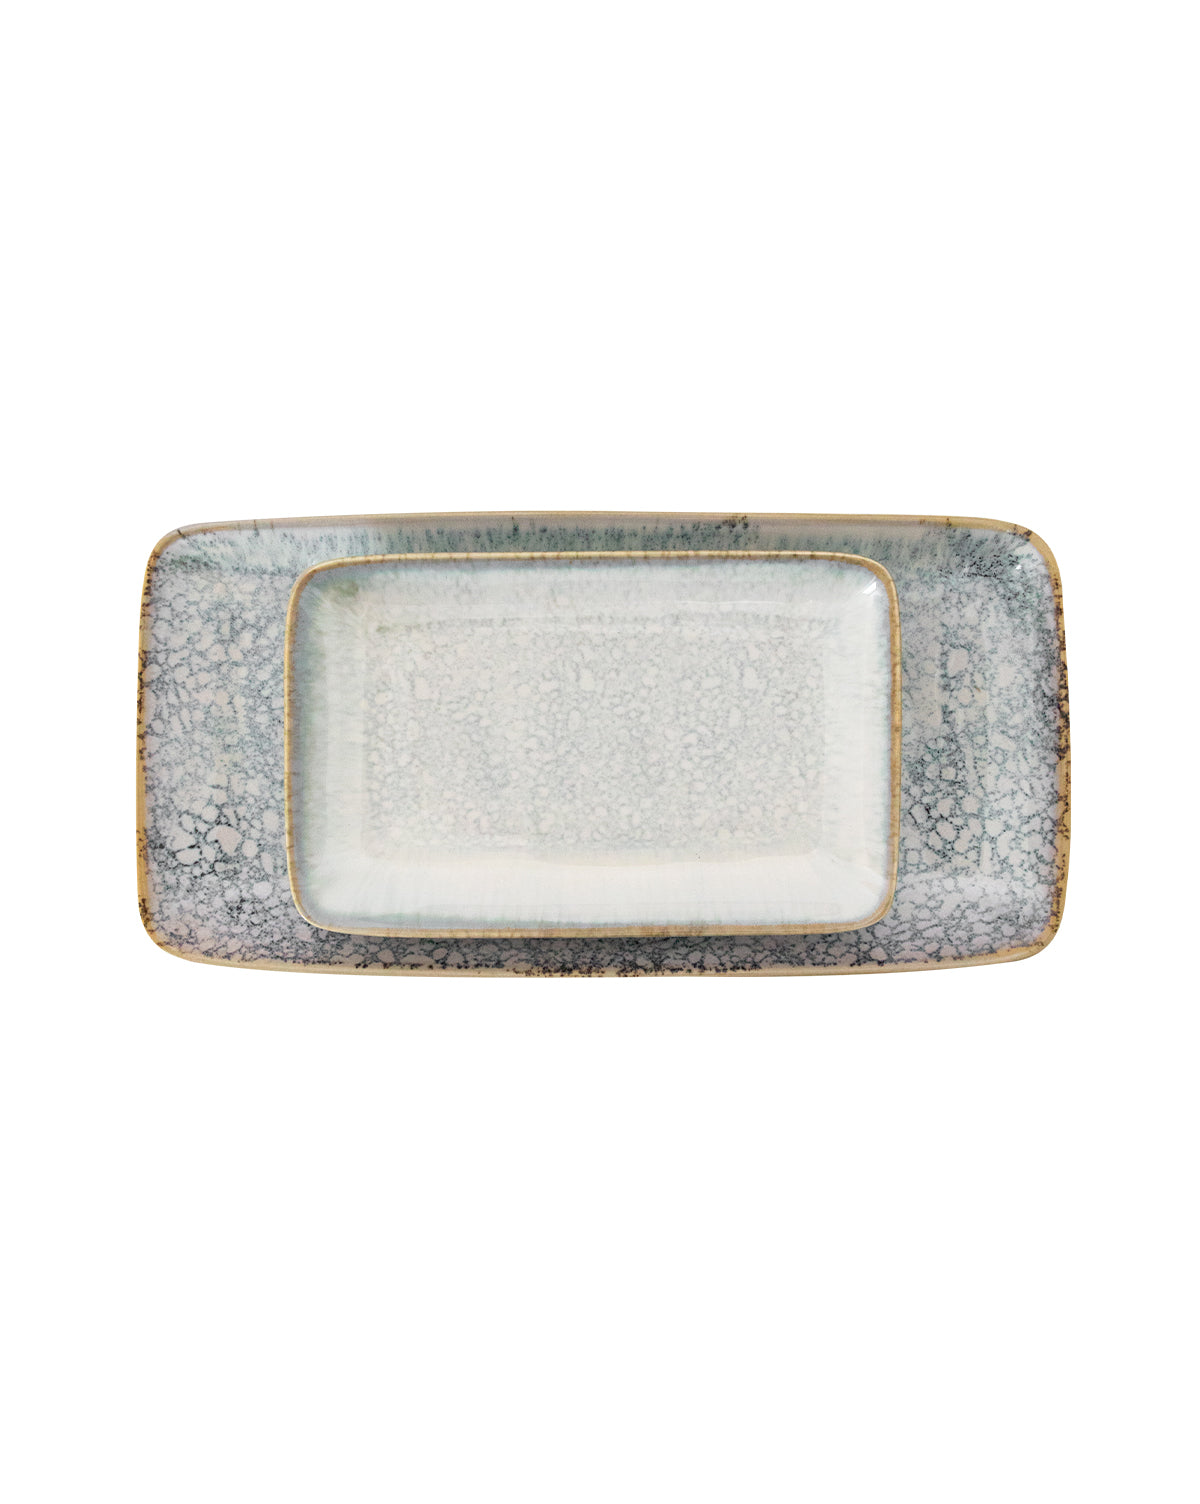 Reactive Glazed Stoneware Tray